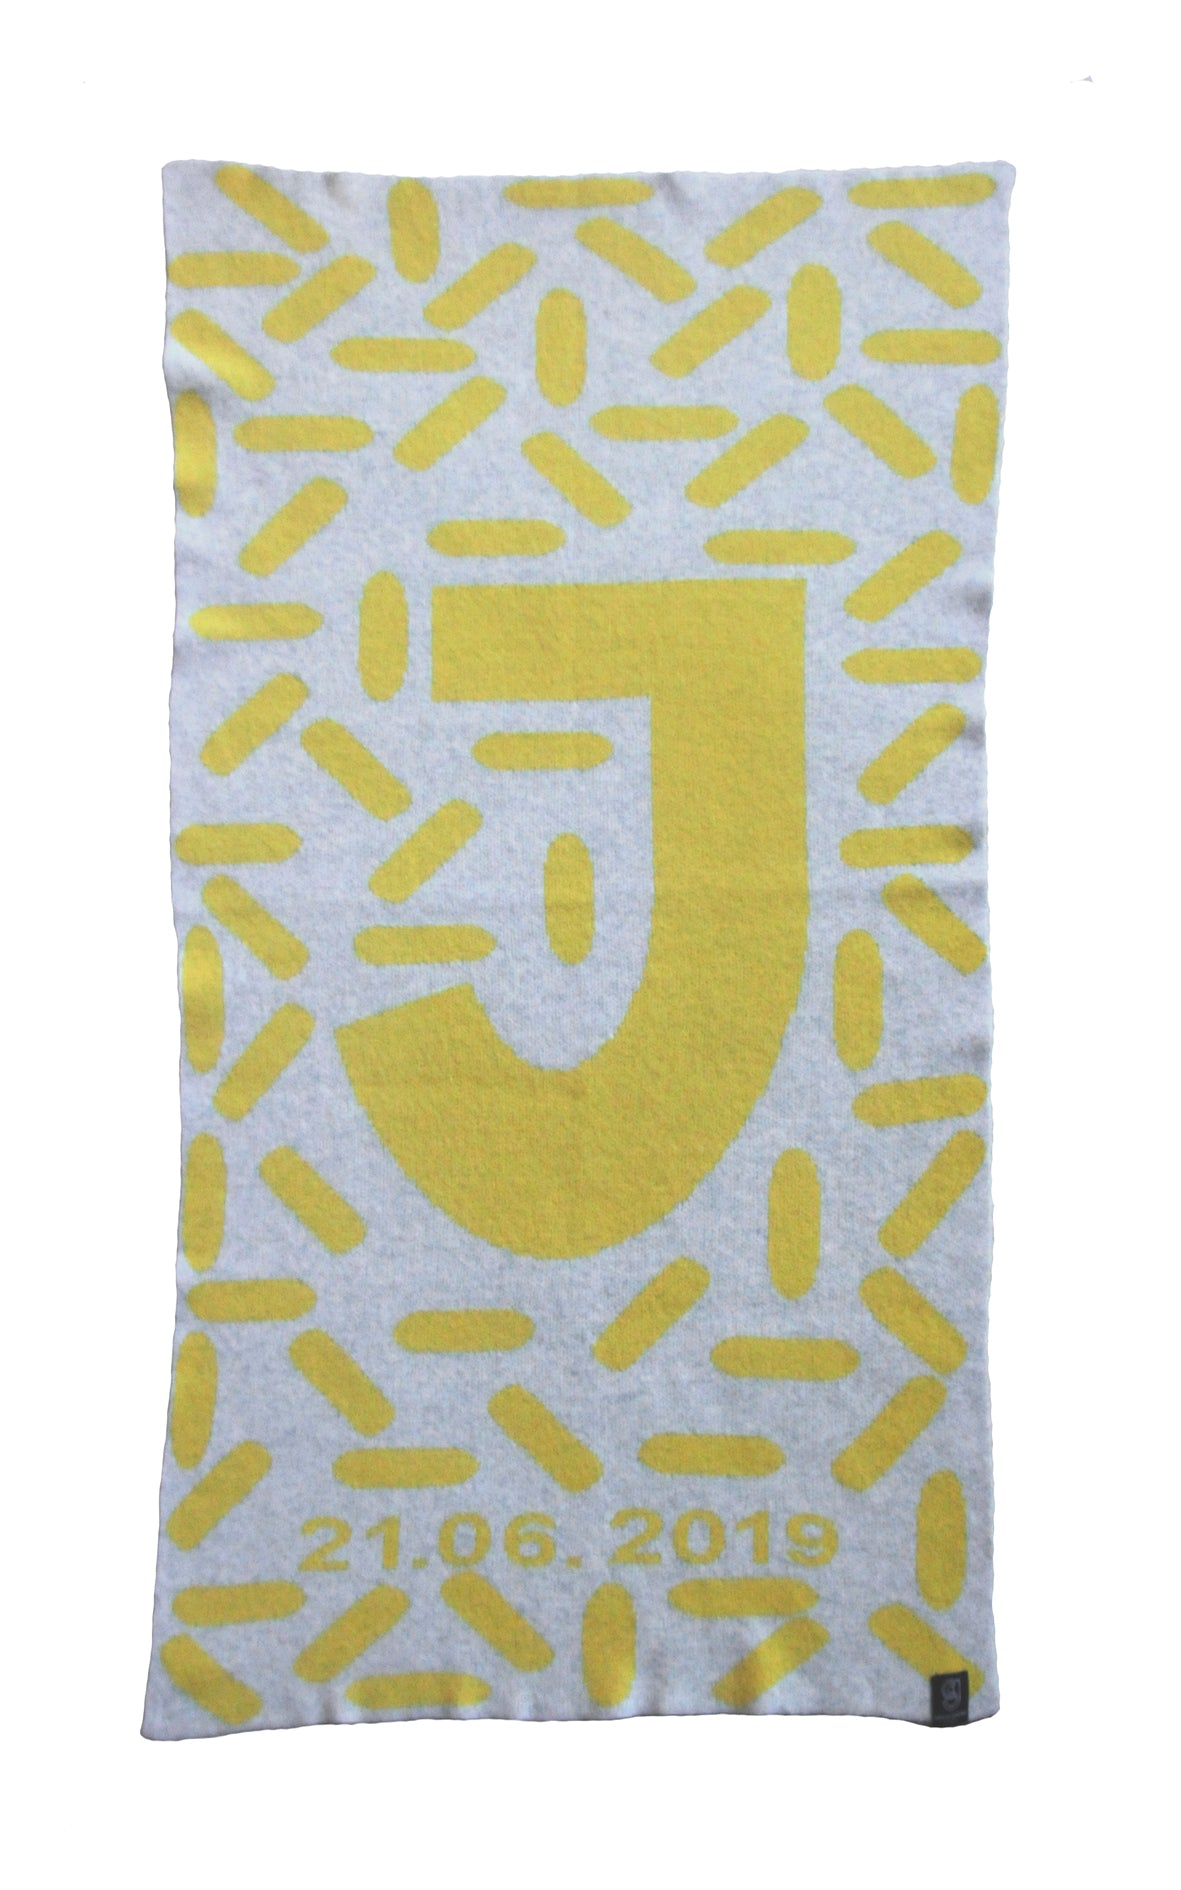 D.O.B ALPHABET BLANKET IN GREY AND YELLOW